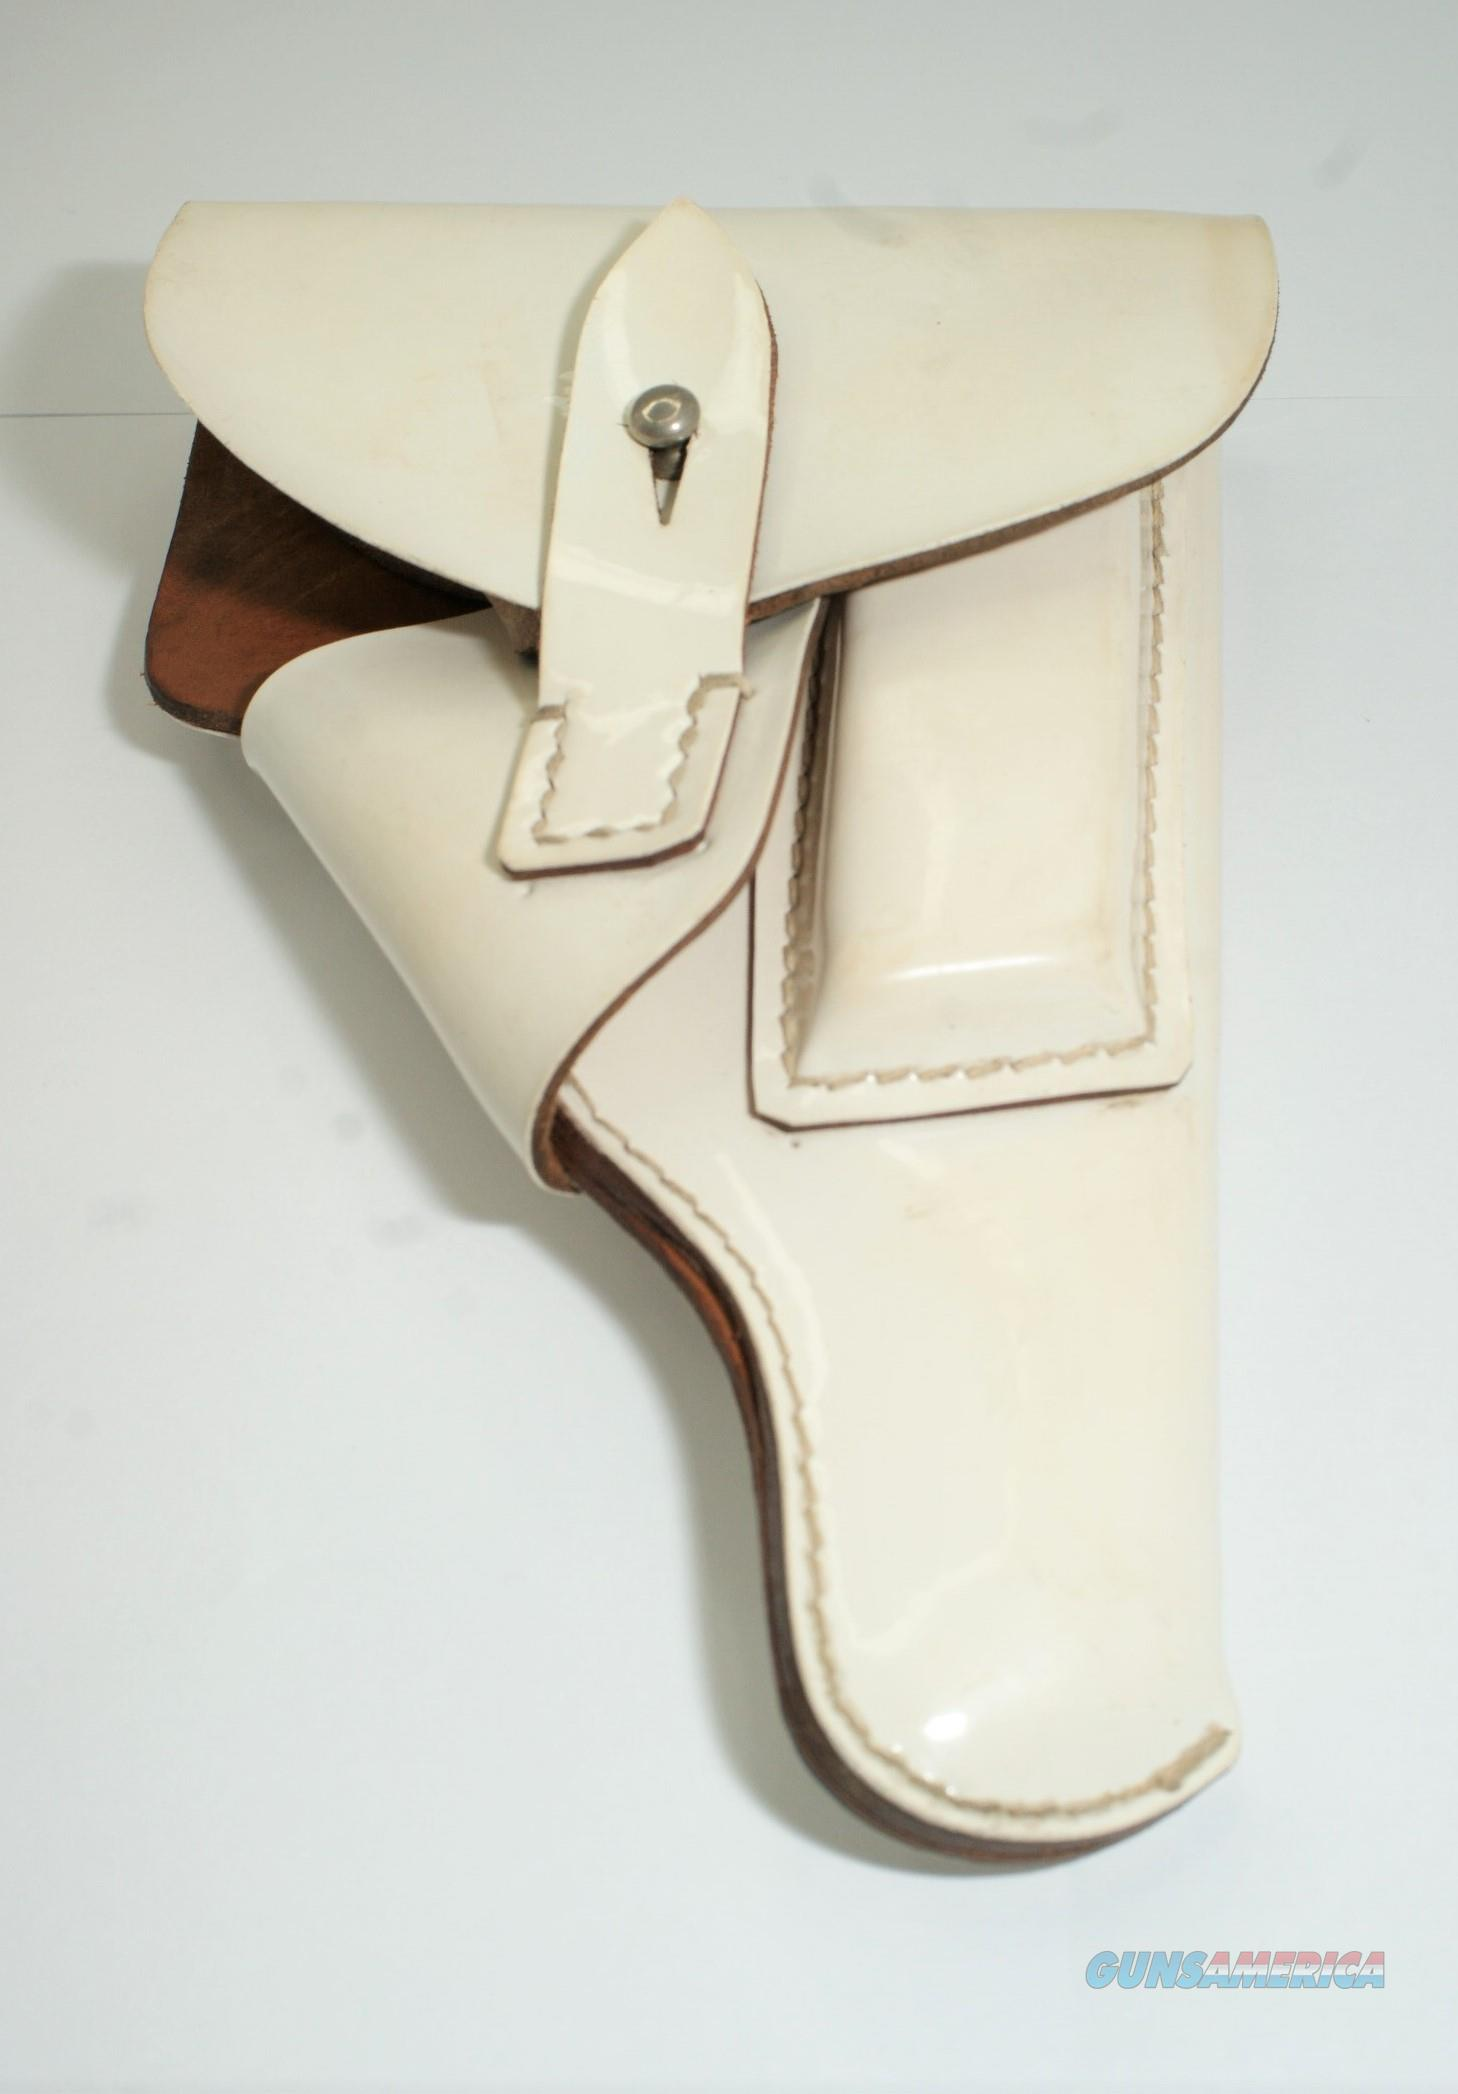 VINTAGE POST WW2 GERMANY WALTHER PP PARADE PISTOL GUN LEATHER HOLSTER  Non-Guns > Holsters and Gunleather > Military